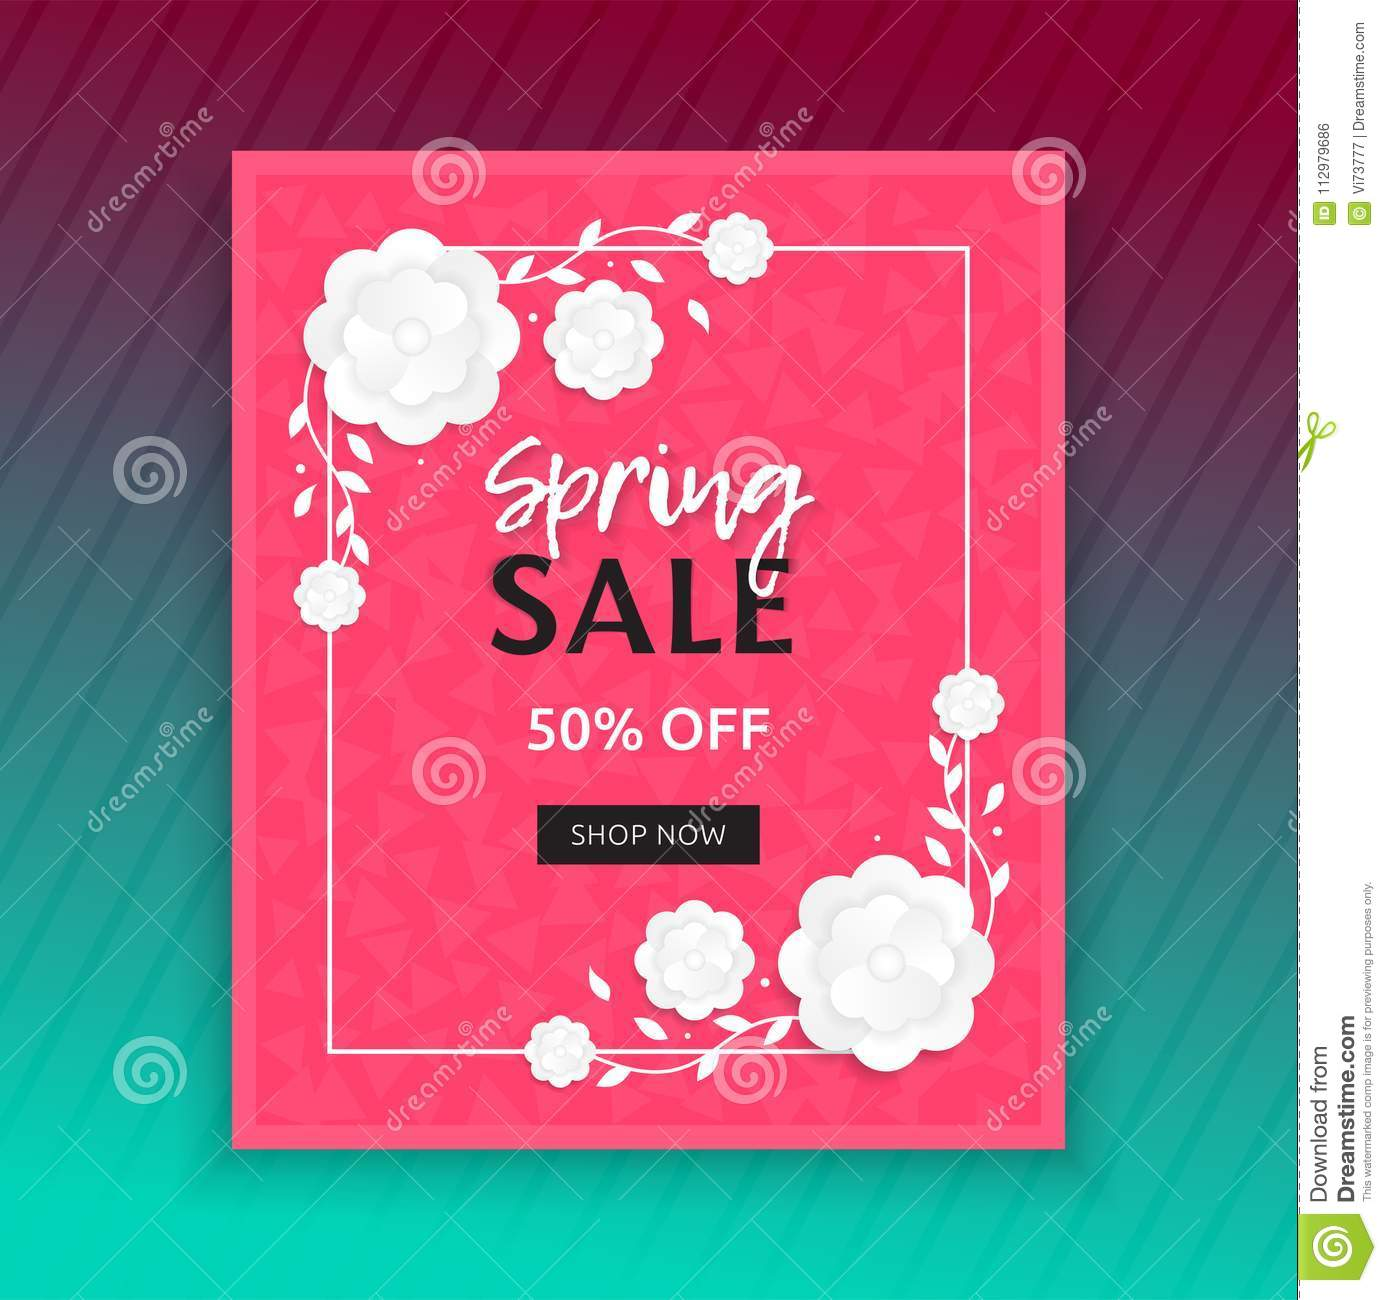 Spring sale banner with white flower. Modern vector design of poster or discount card.